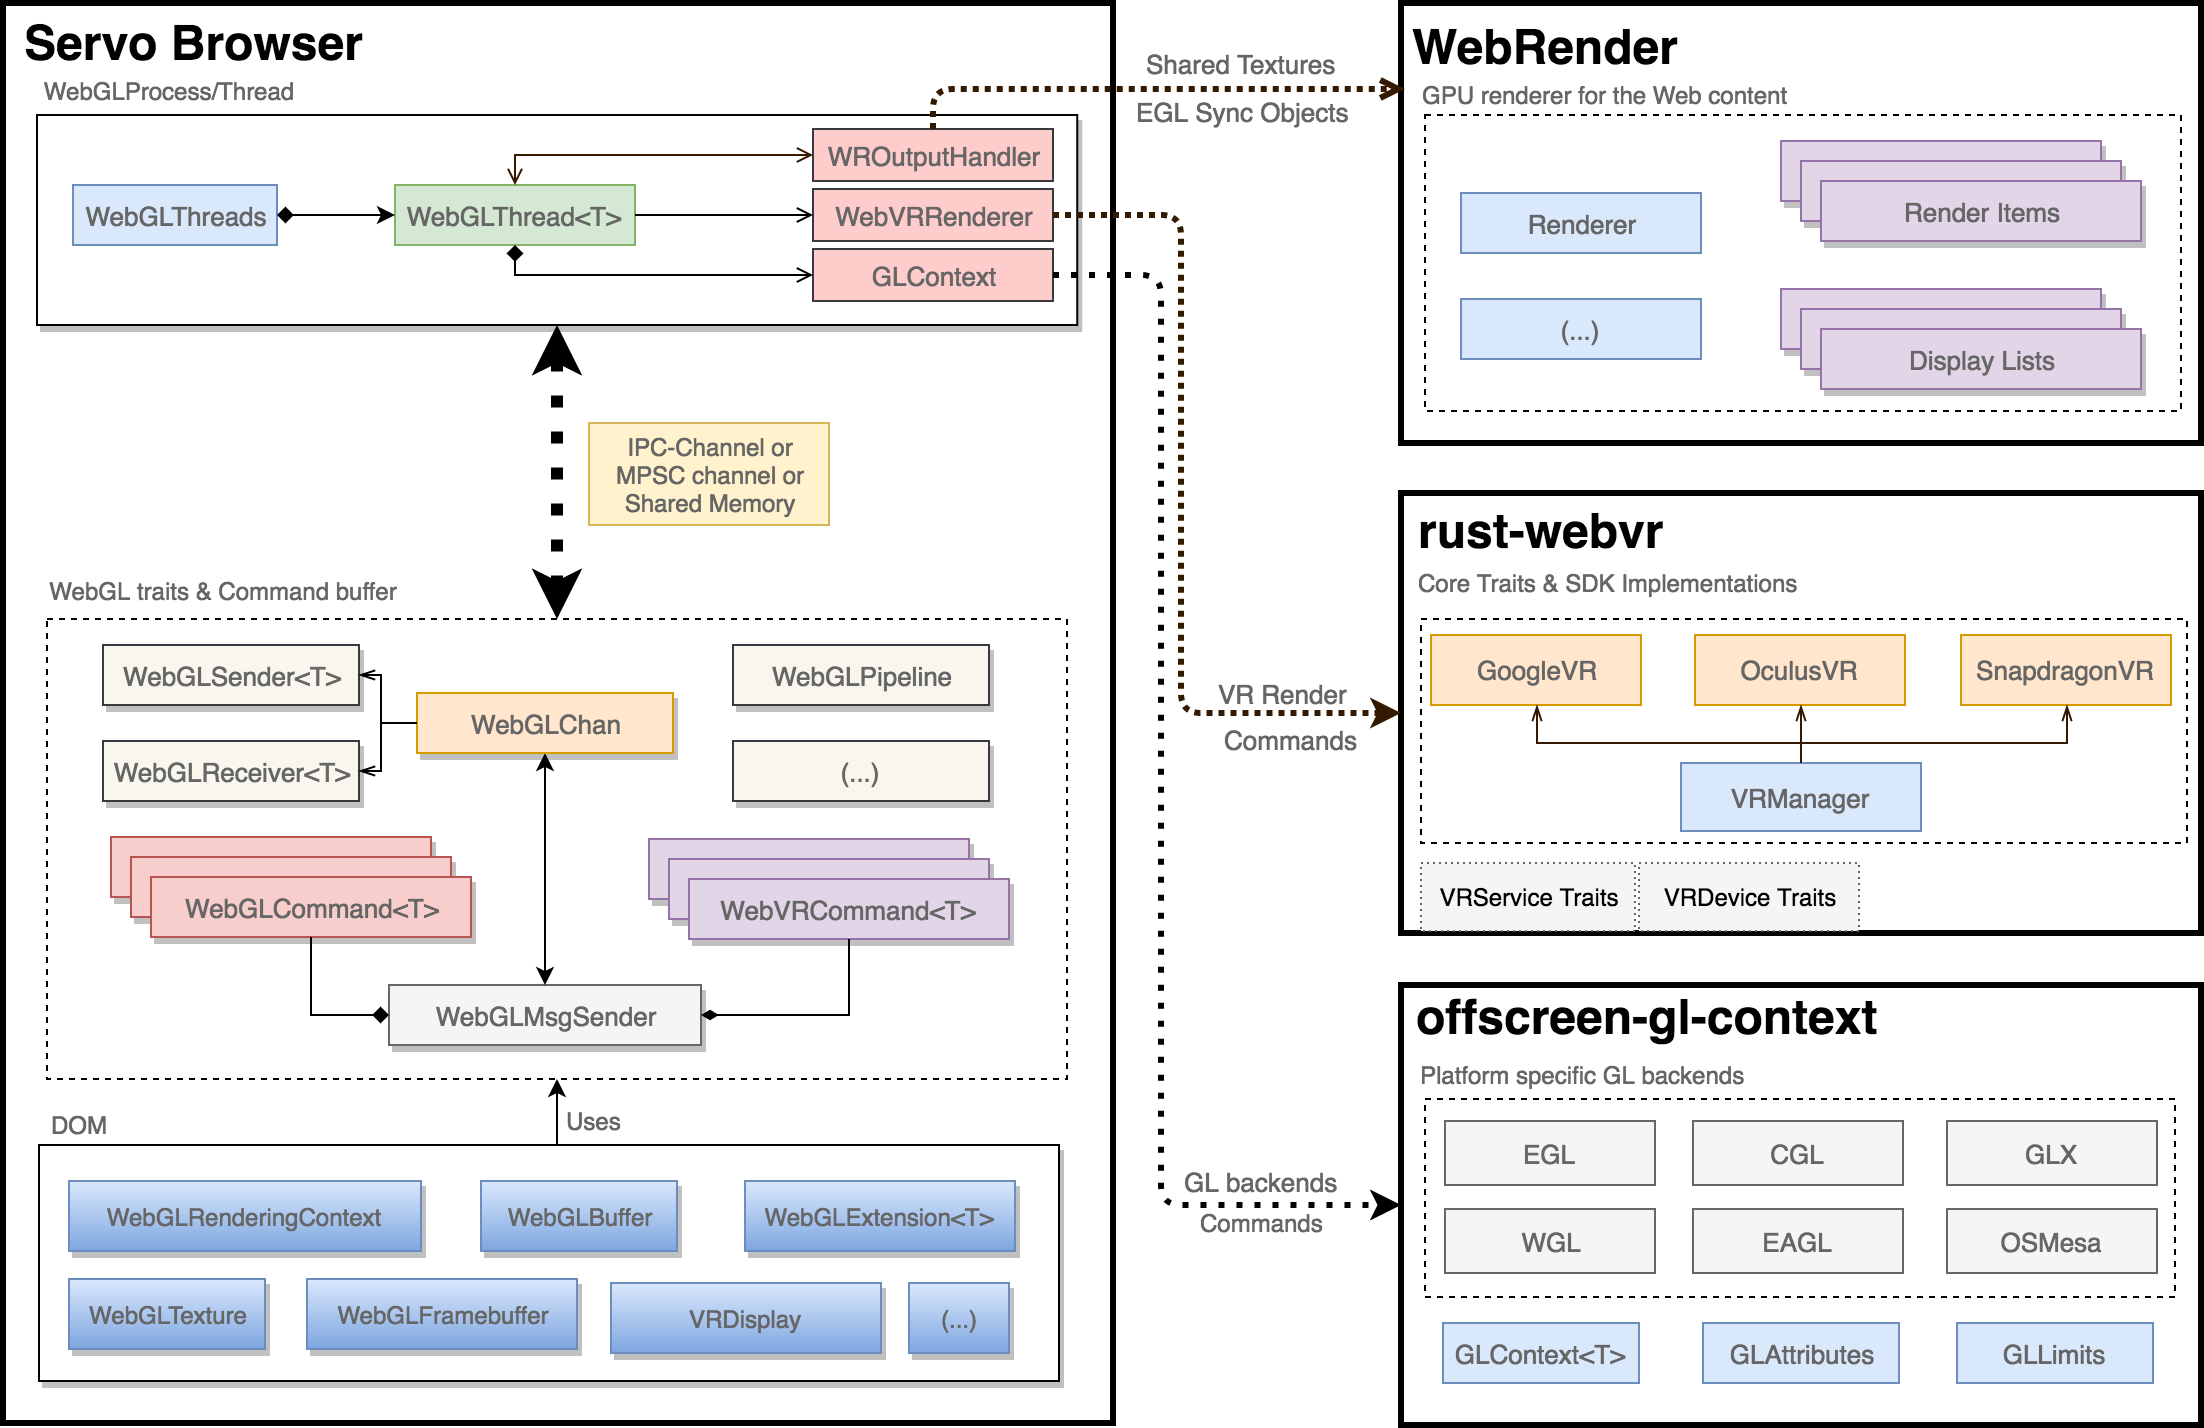 architecture and optimizations